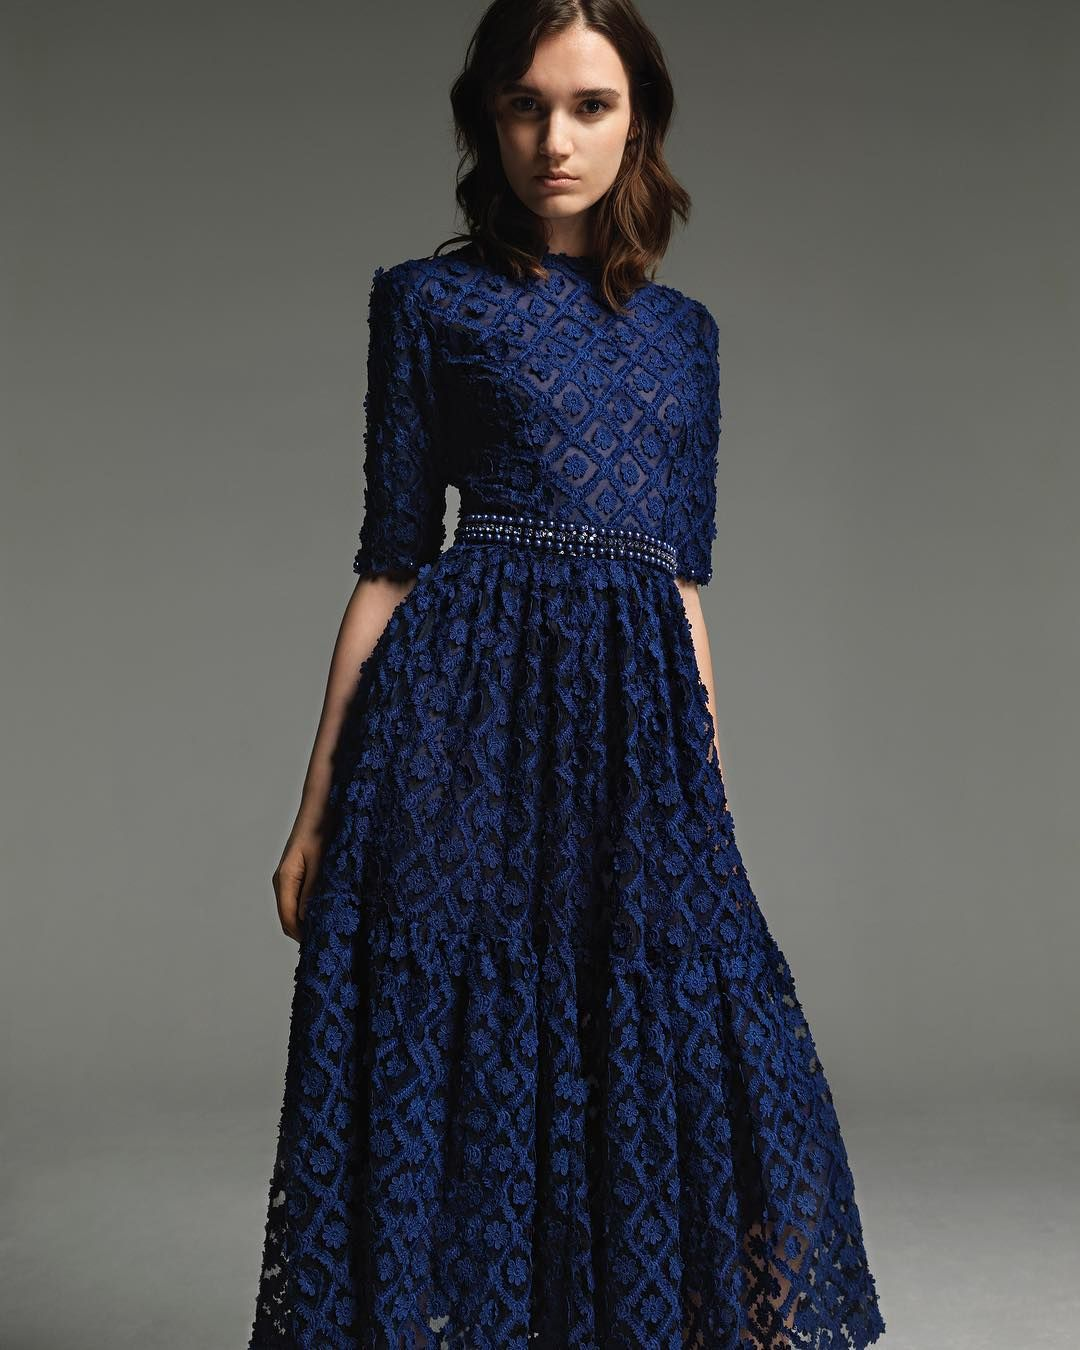 80f7cd186bb Royal #blue for Fall/Winter 2017/18. Tap link in bio to discover the  collection and the worldwide network. #costarellos #fall2017 #rtw #dress